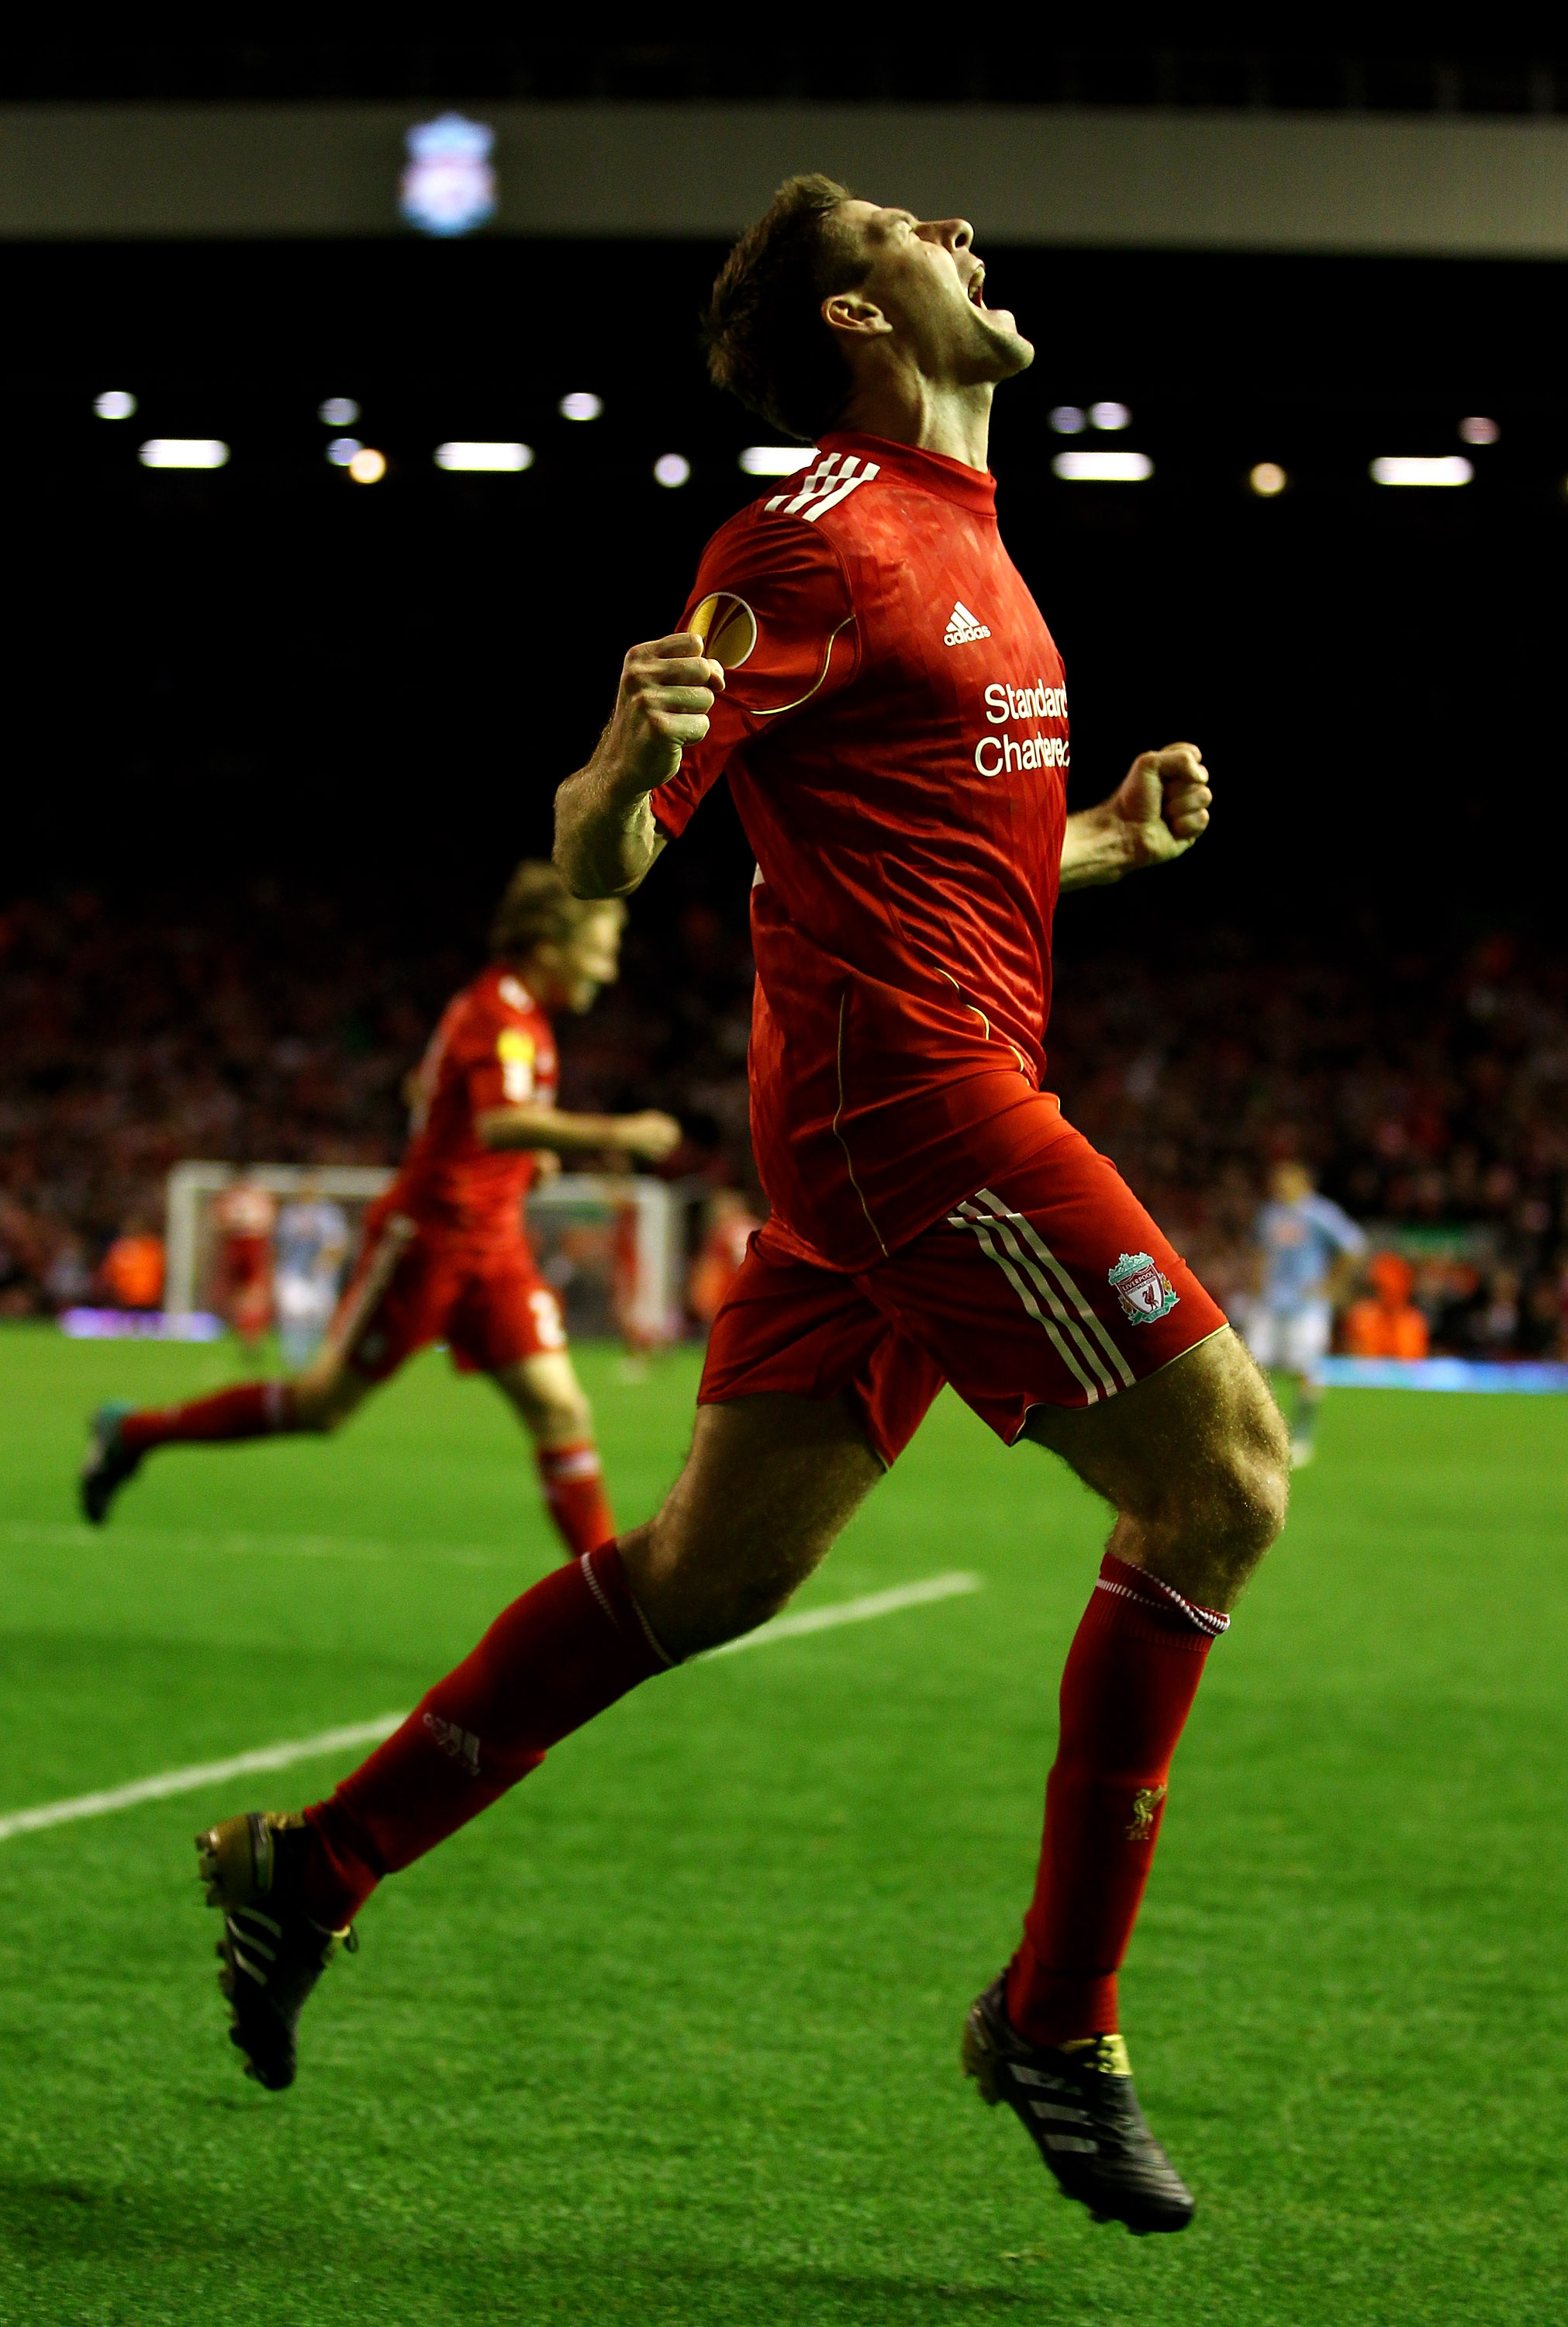 LIVERPOOL, ENGLAND - NOVEMBER 04:  Steven Gerrard of Liverpool celebrates scoring his team's third goal and his hat trick during the UEFA Europa League Group K match beteween Liverpool and SSC Napoli at Anfield on November 4, 2010 in Liverpool, England.